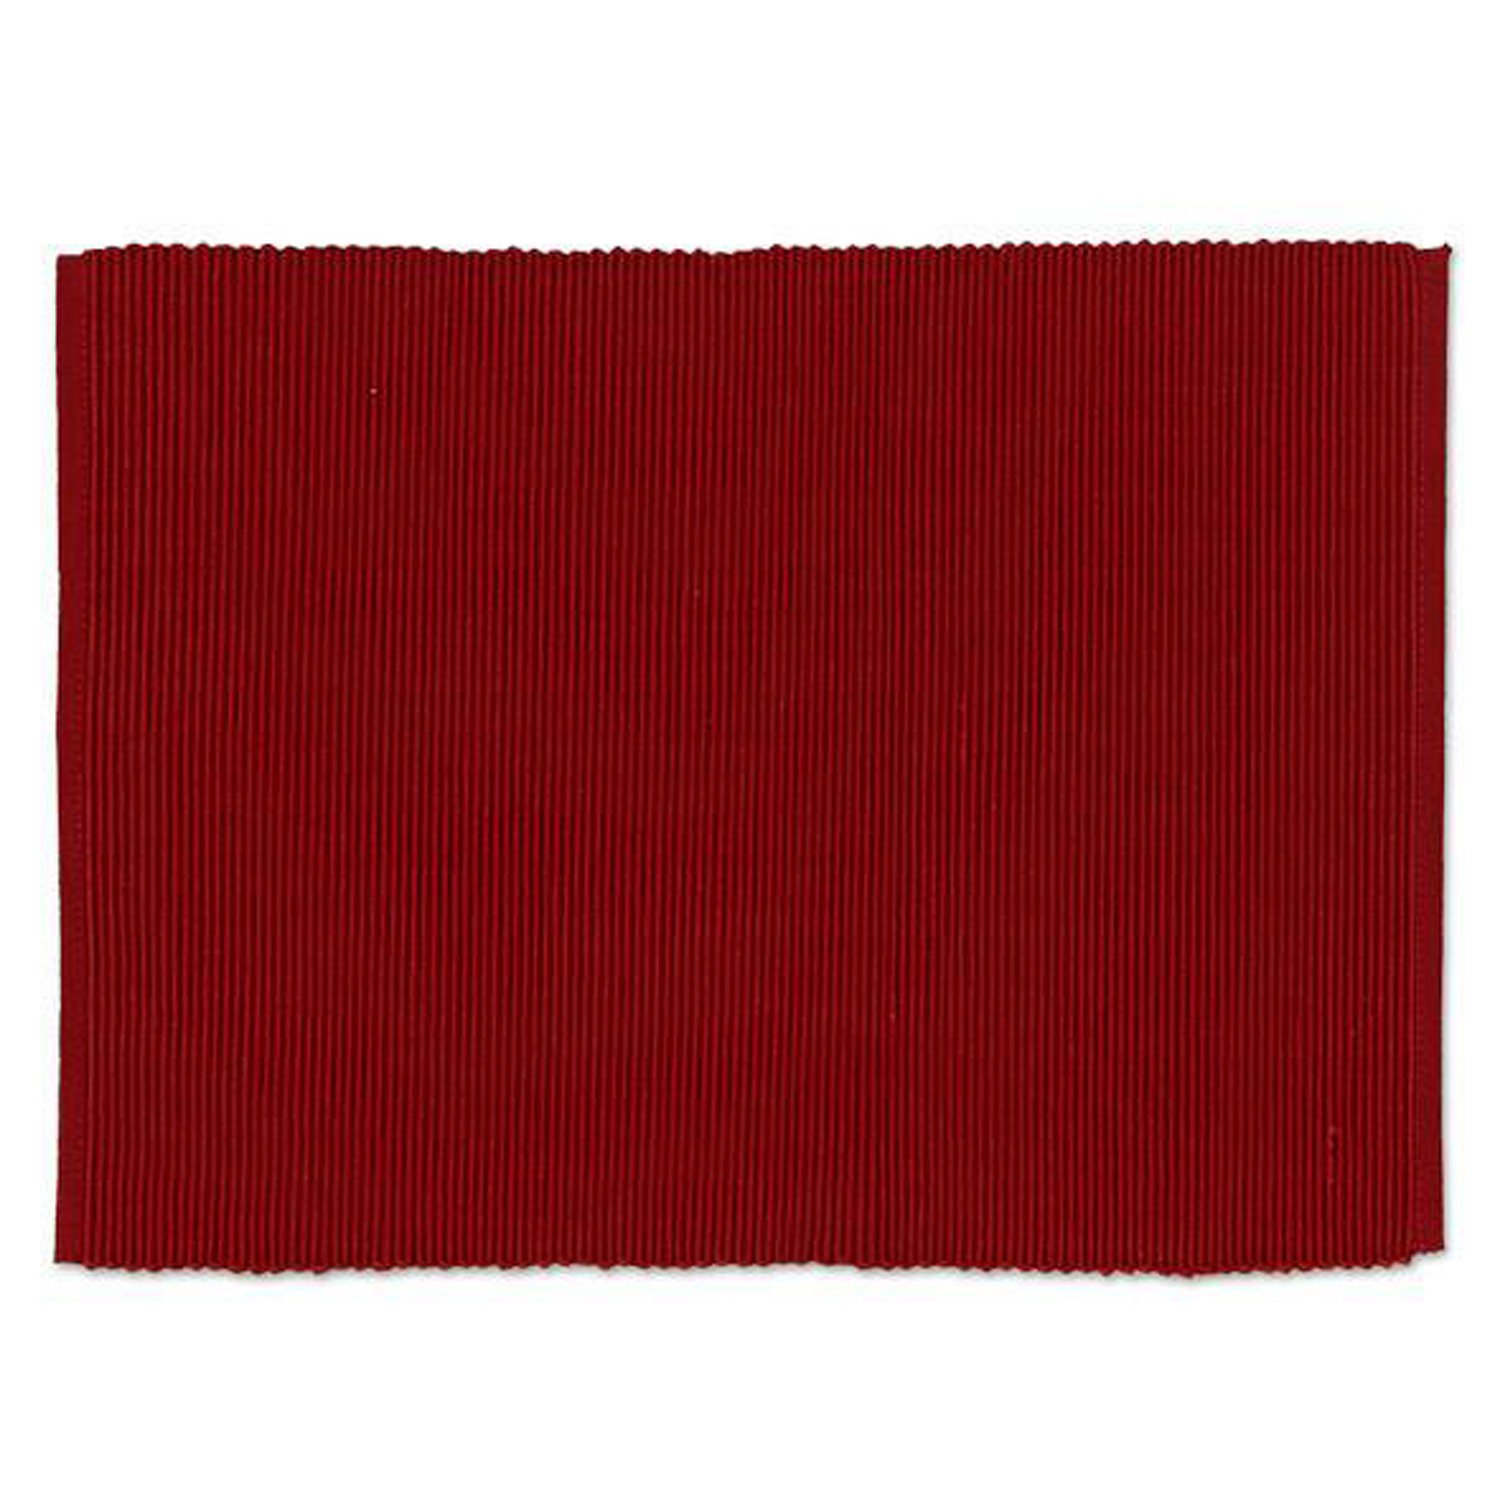 Design Imports A Walk in the Woods Table Linens, 13-Inch by 19-Inch Placemats, Set of 4, Garnet